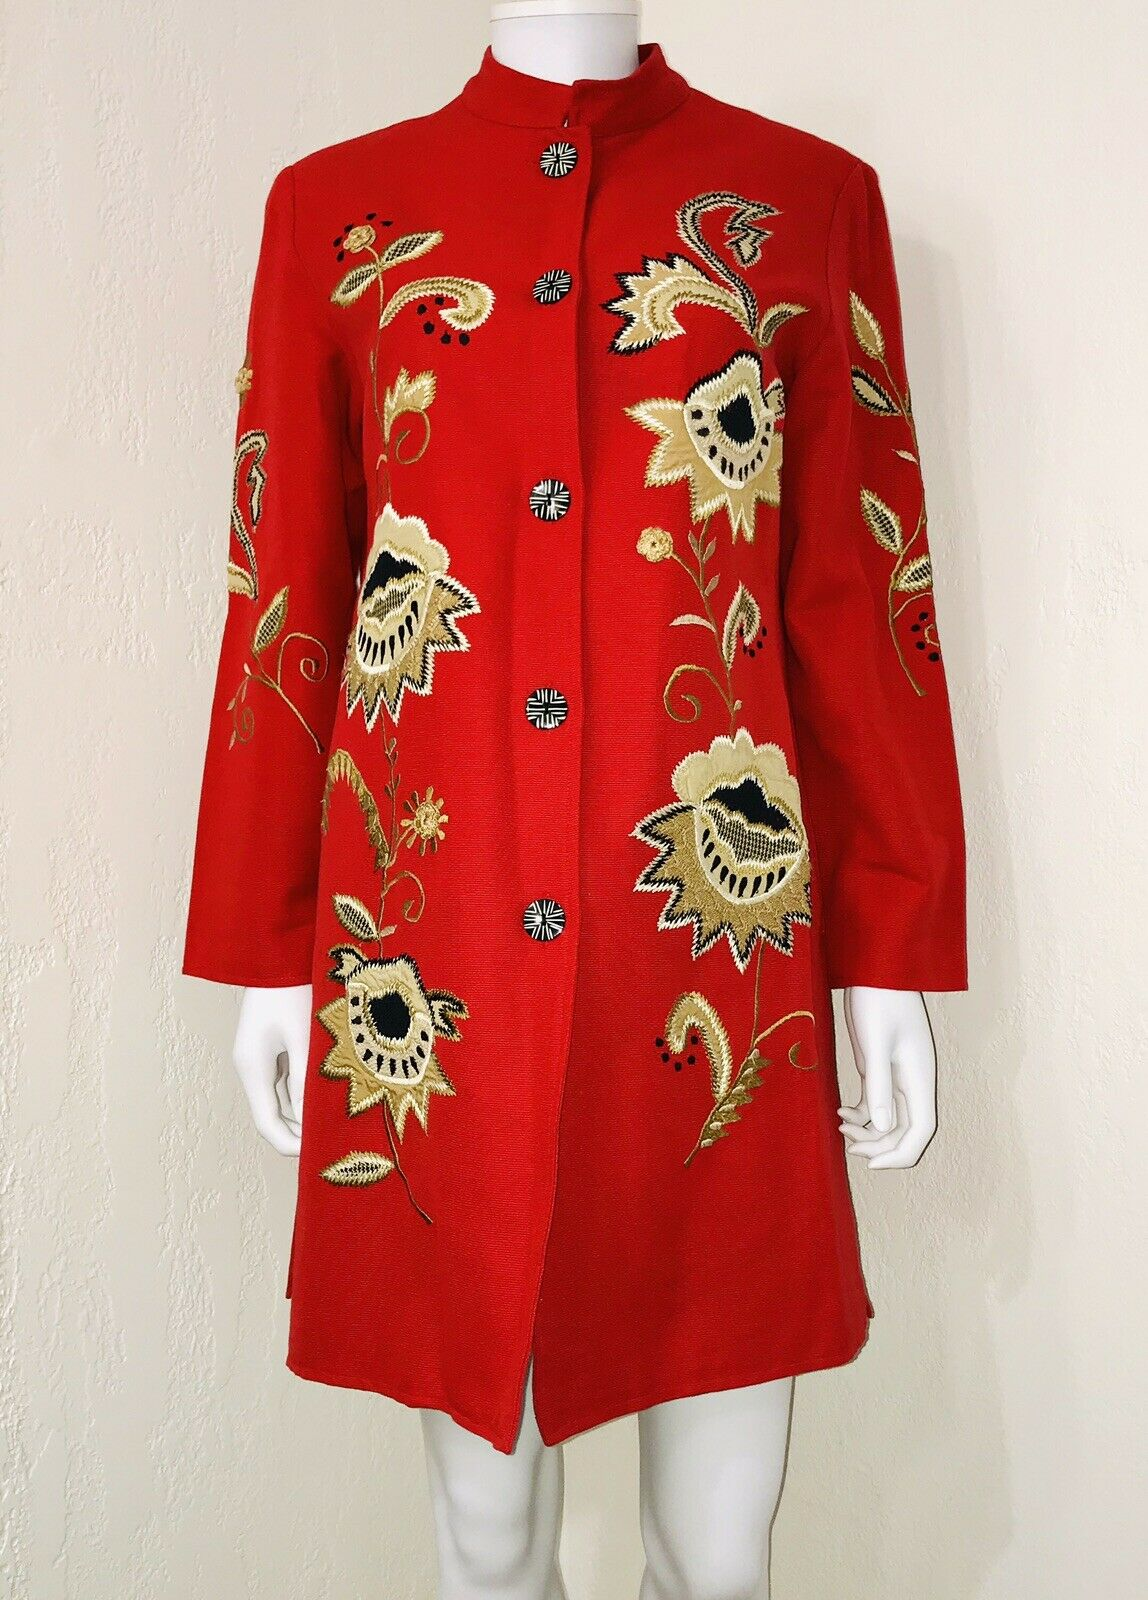 NWOT Indigo Moon Red Floral Embroidered Art To Wear Mandarin Collar Coat Size XS